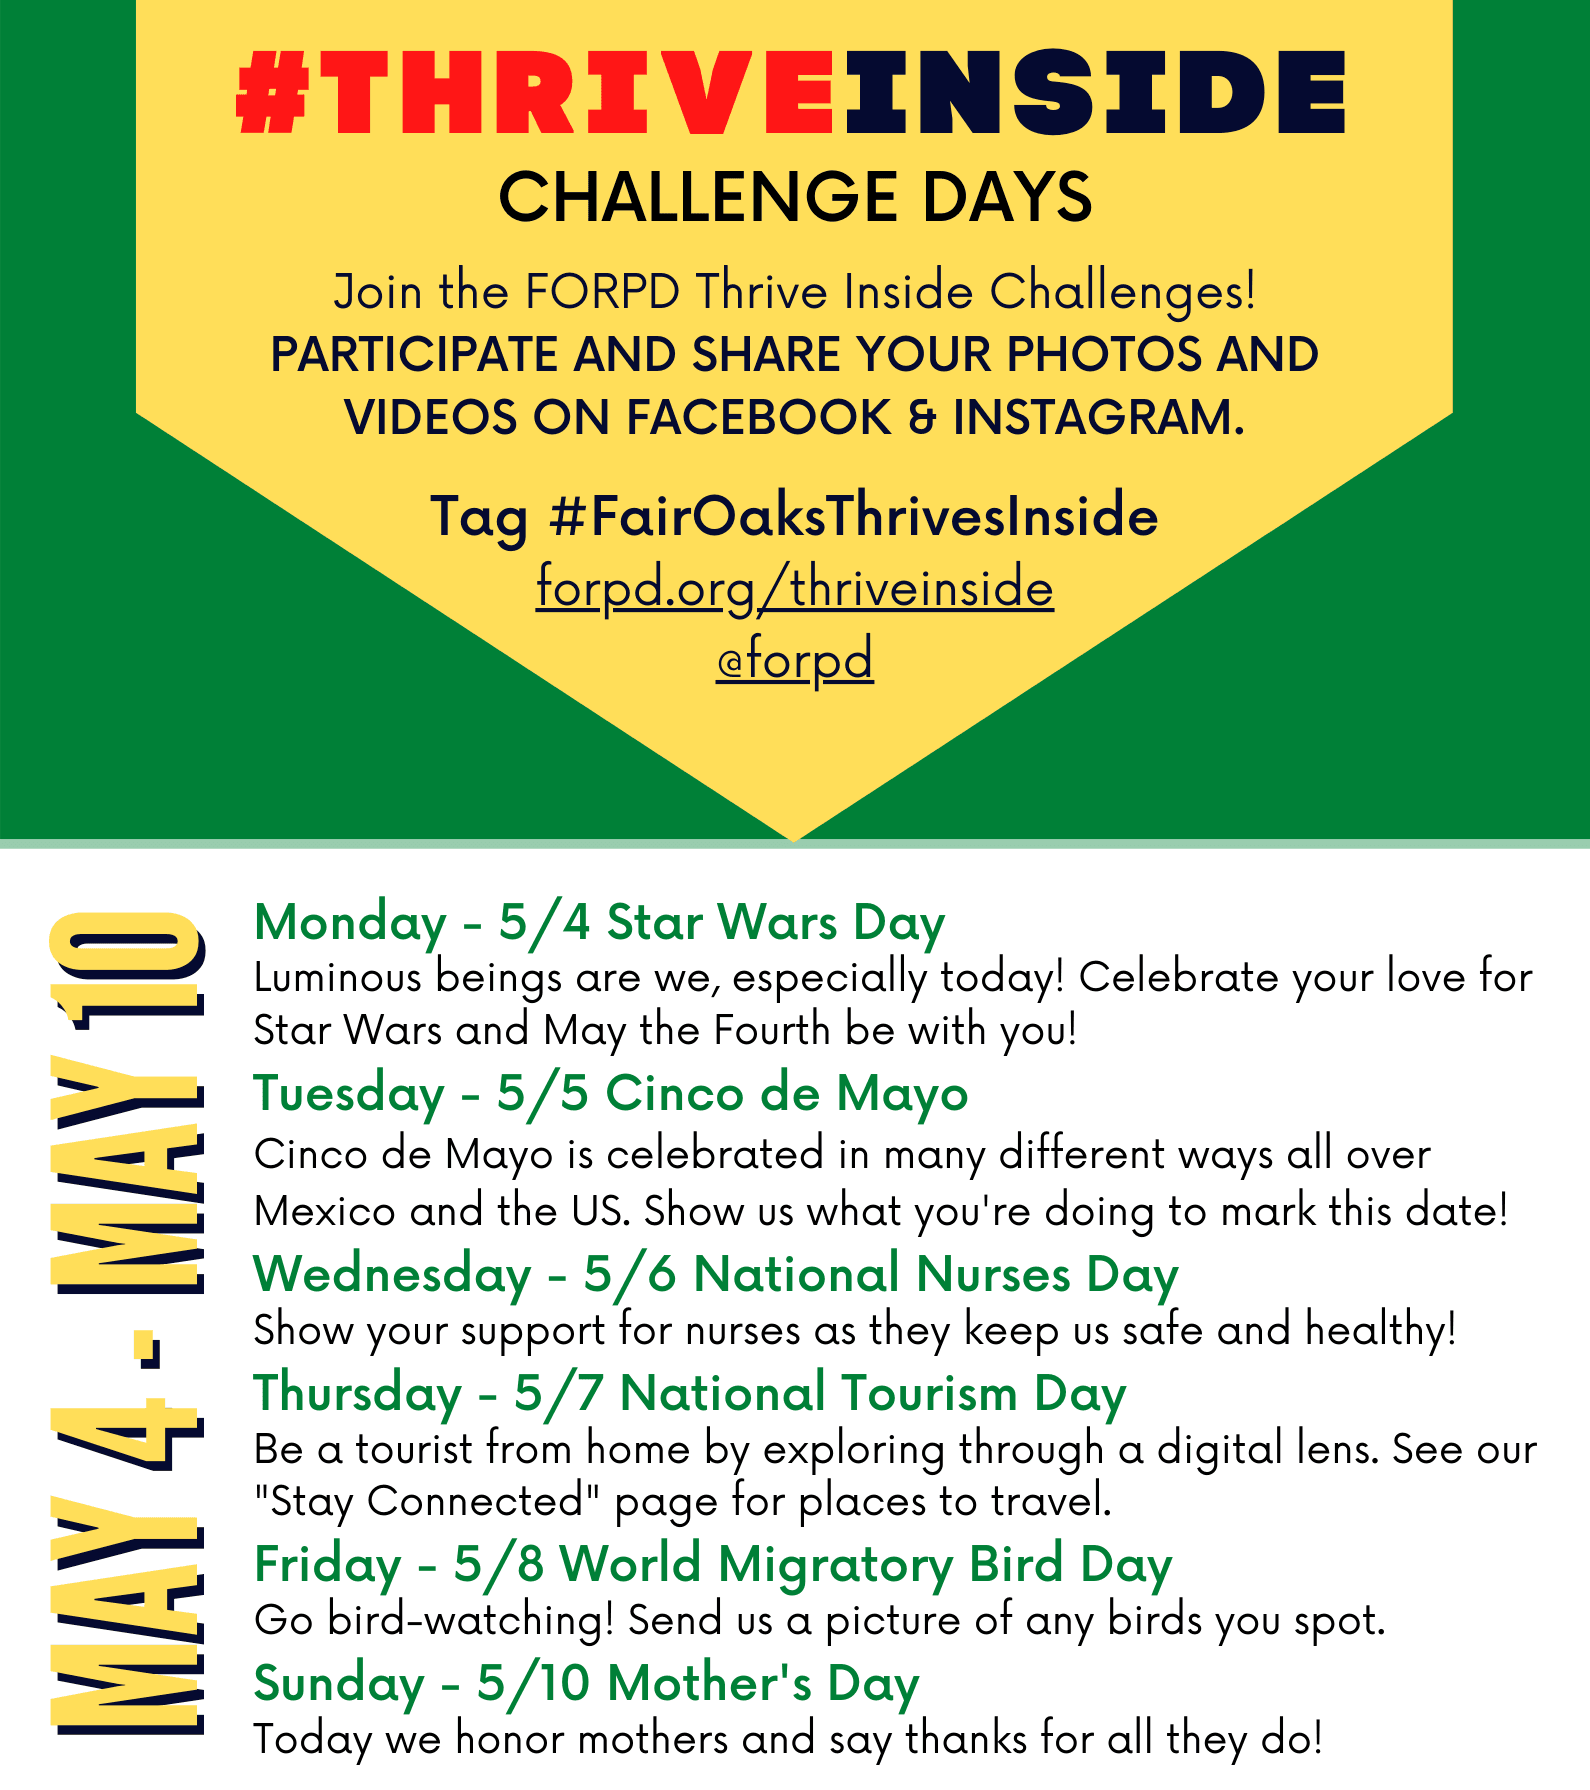 FairOaksThrivesInside Challenge Days May 4-10